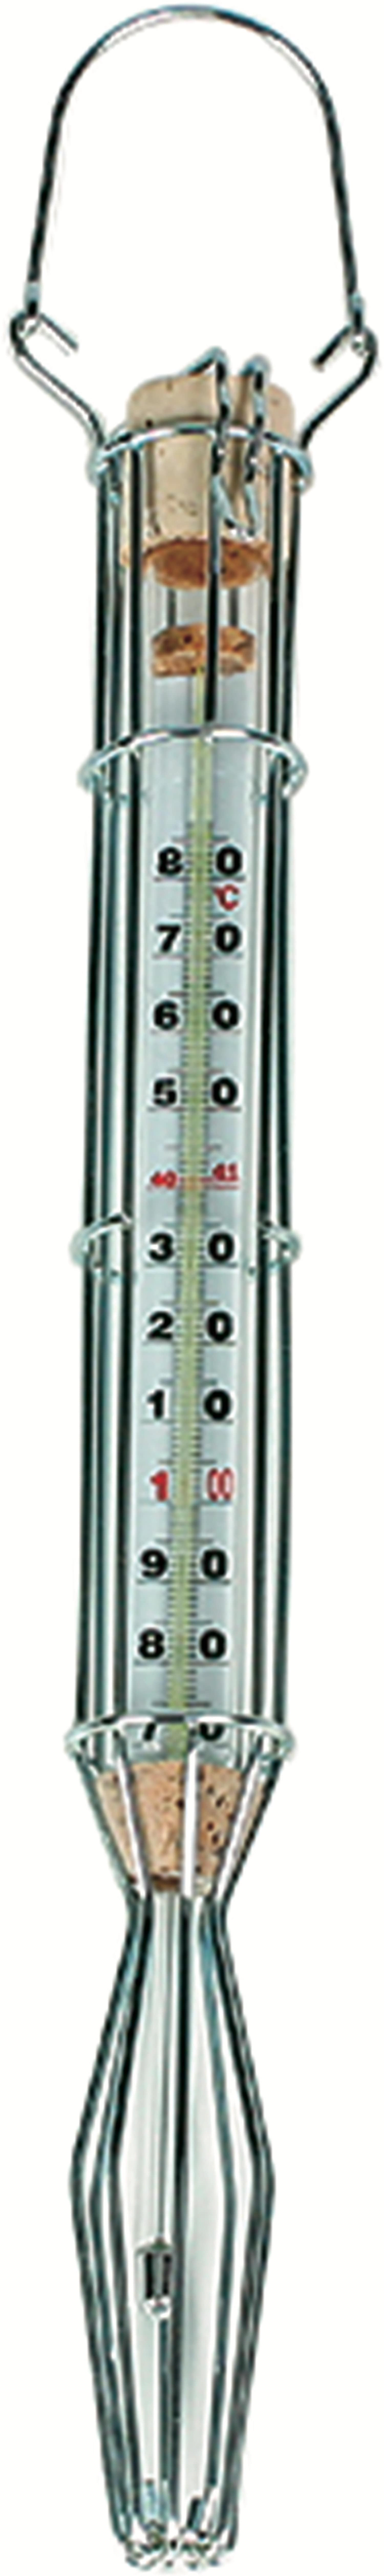 Thermometer 160002